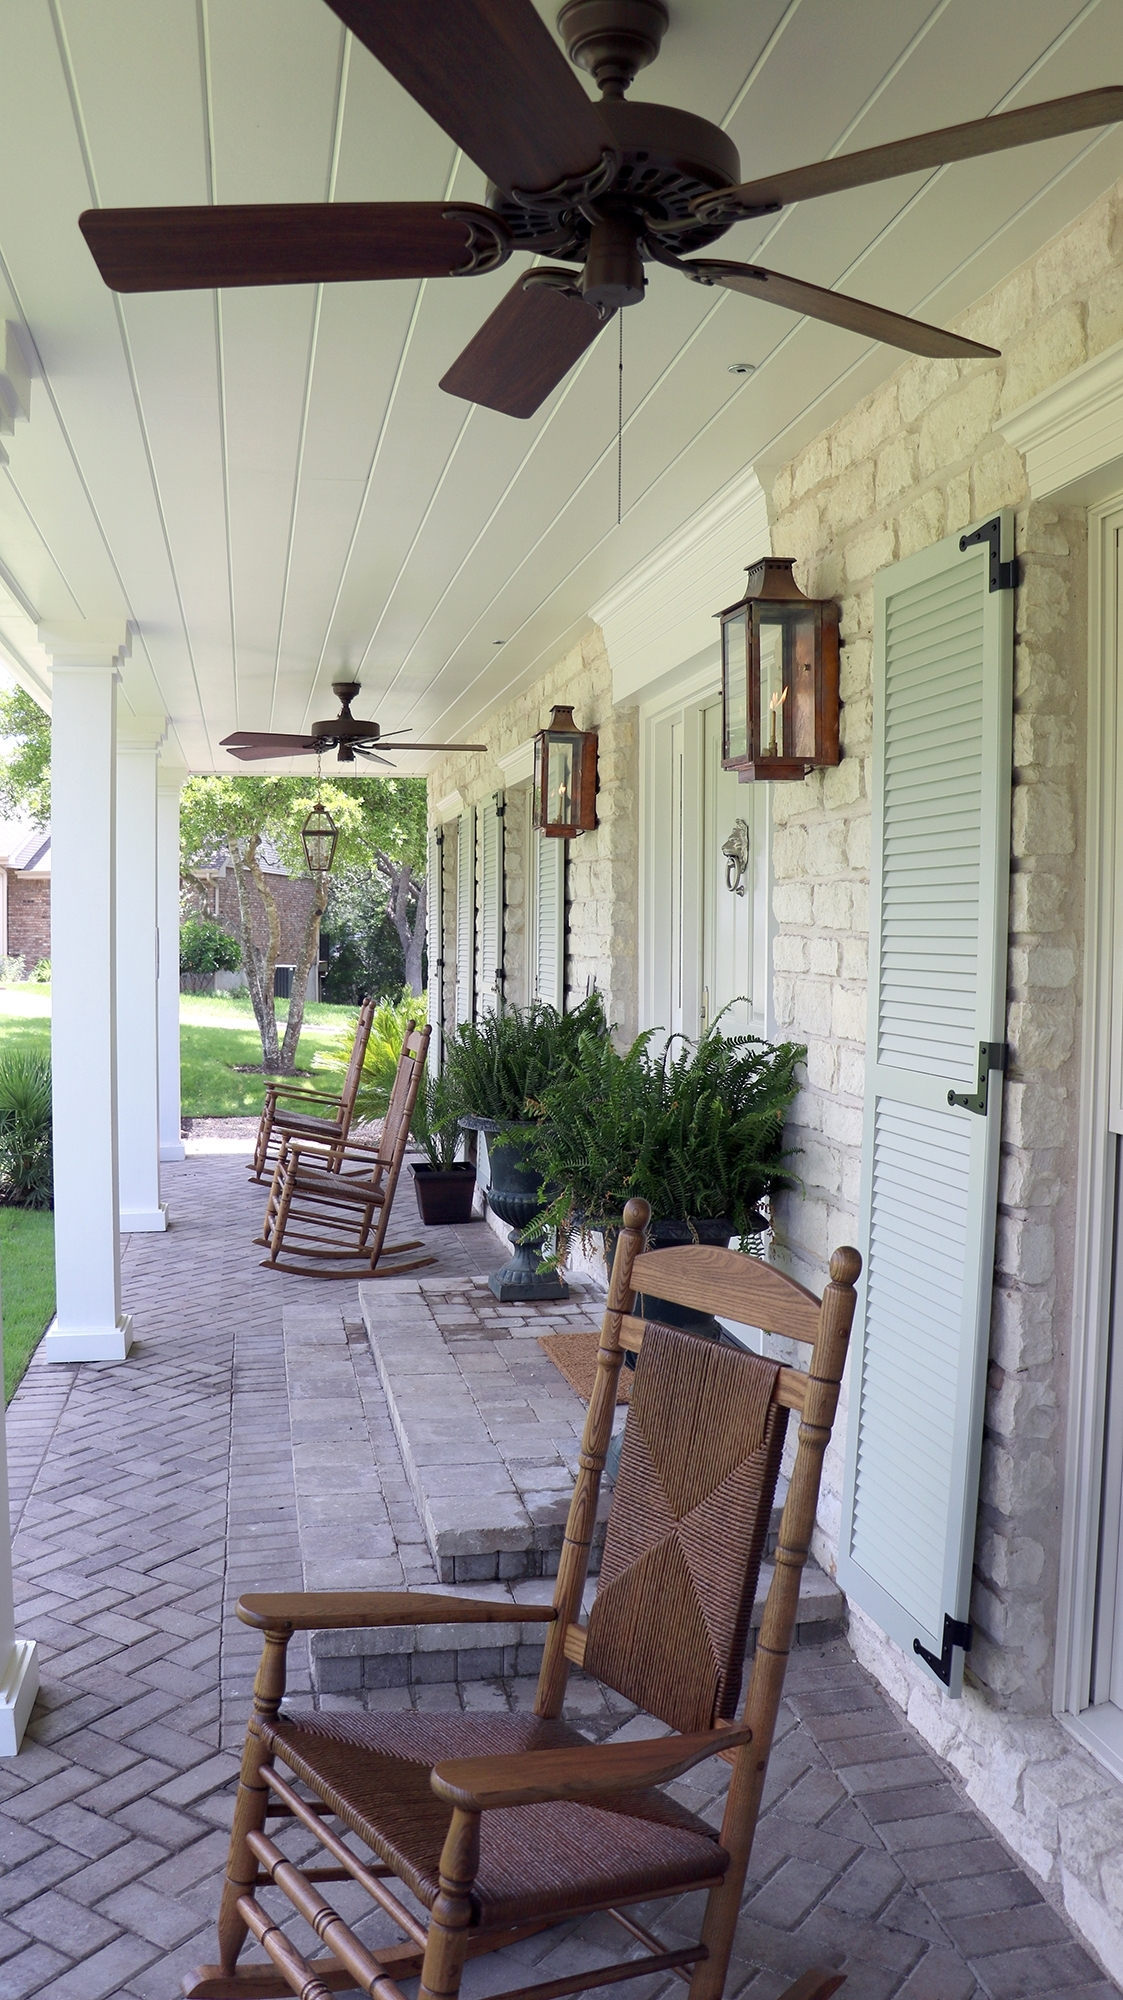 Recent Outdoor Ceiling Fans For Porch Inside Front Porch 4 Hunter Original Outdoor Ceiling Fan – Hunter Fan Blog (View 19 of 20)